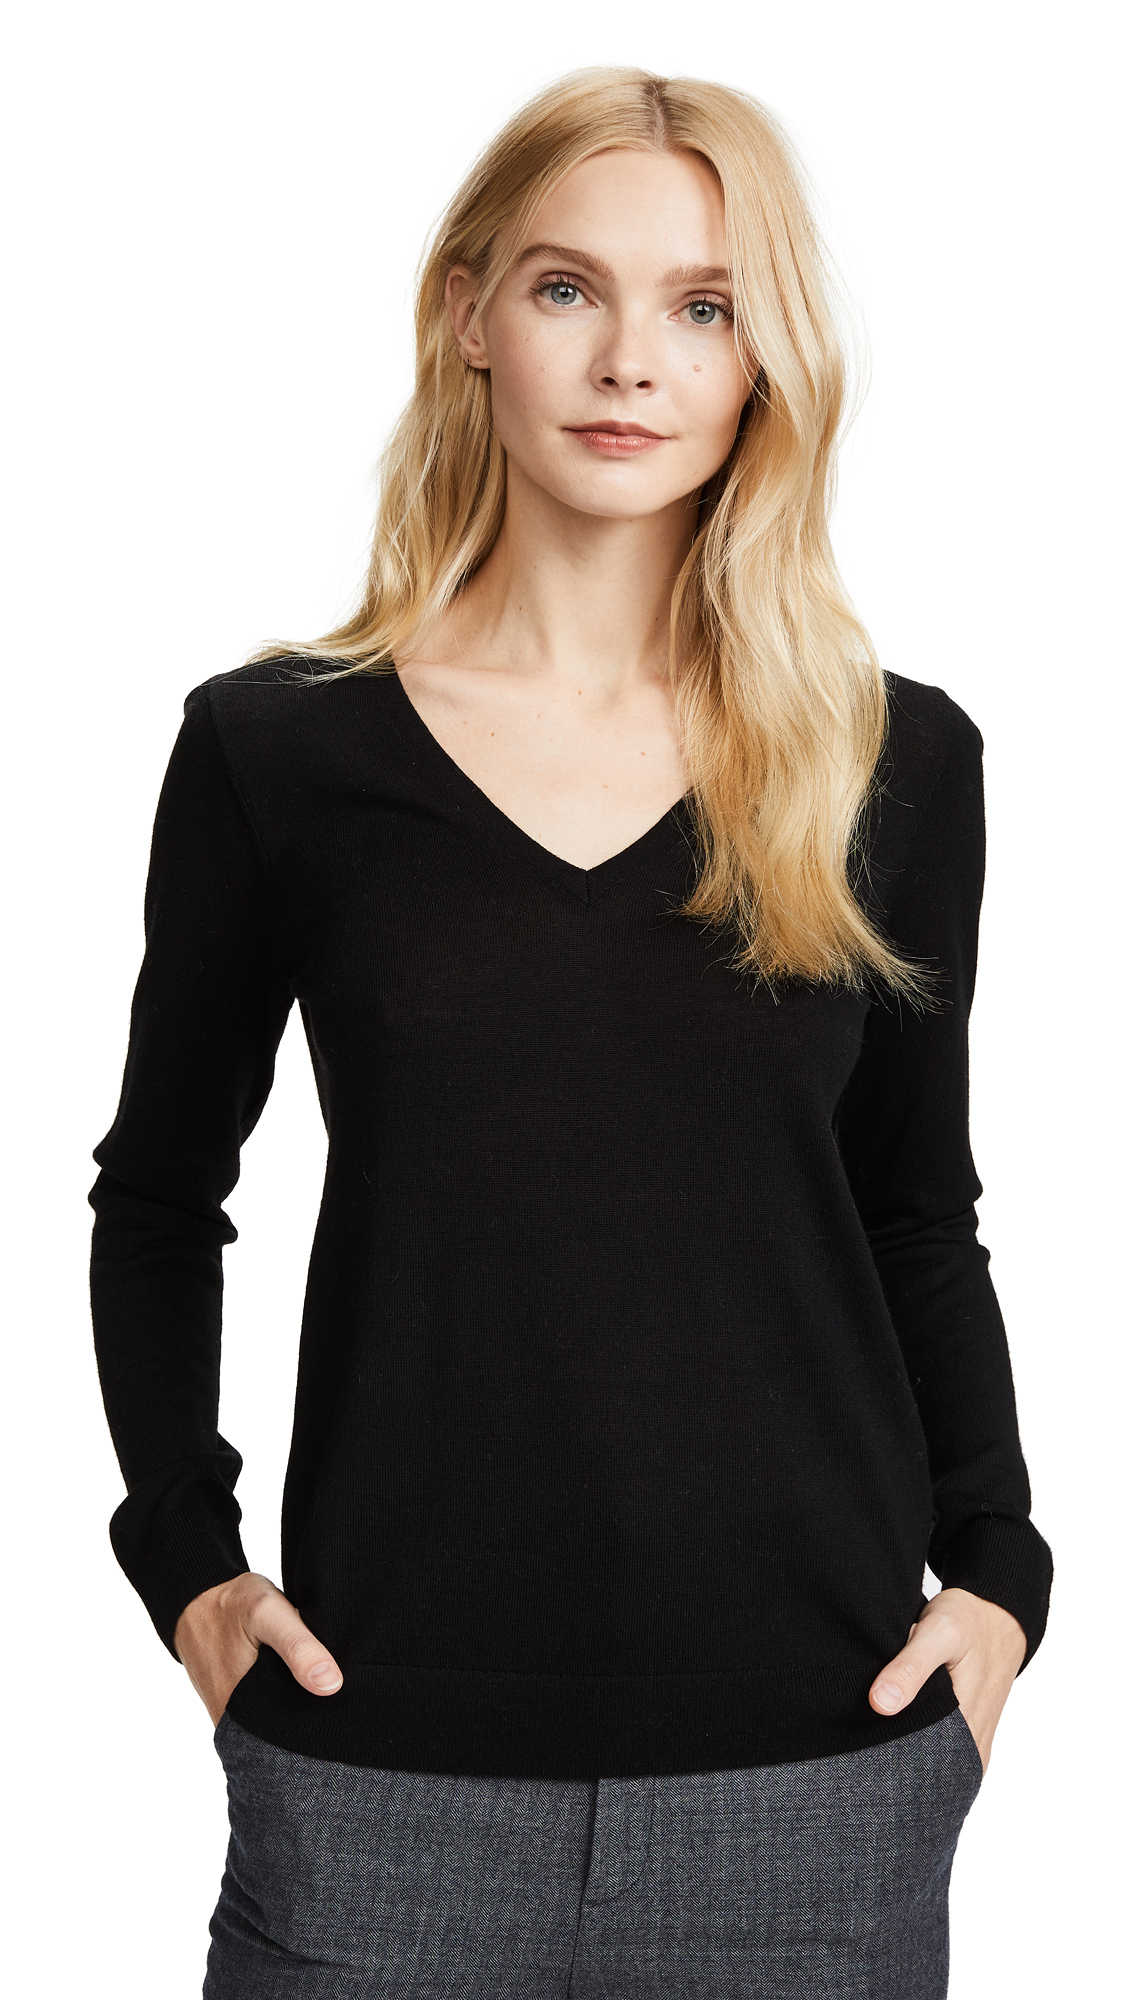 Club Monaco Agnes Sweater - Soot Black